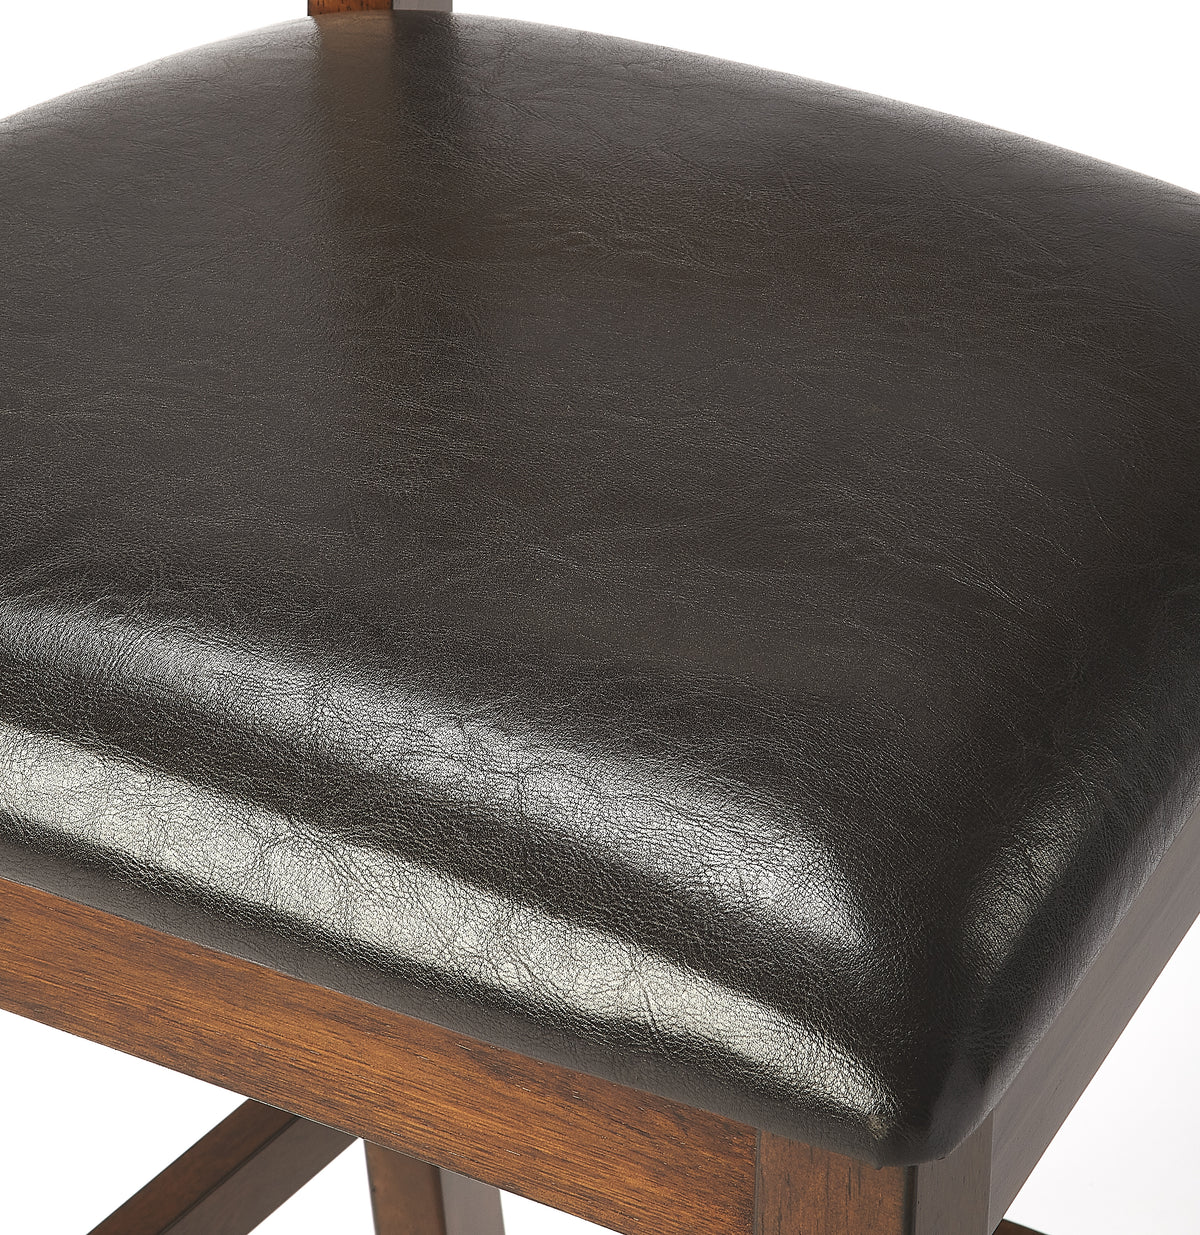 PLATO - DARK BROWN - PUB STOOL